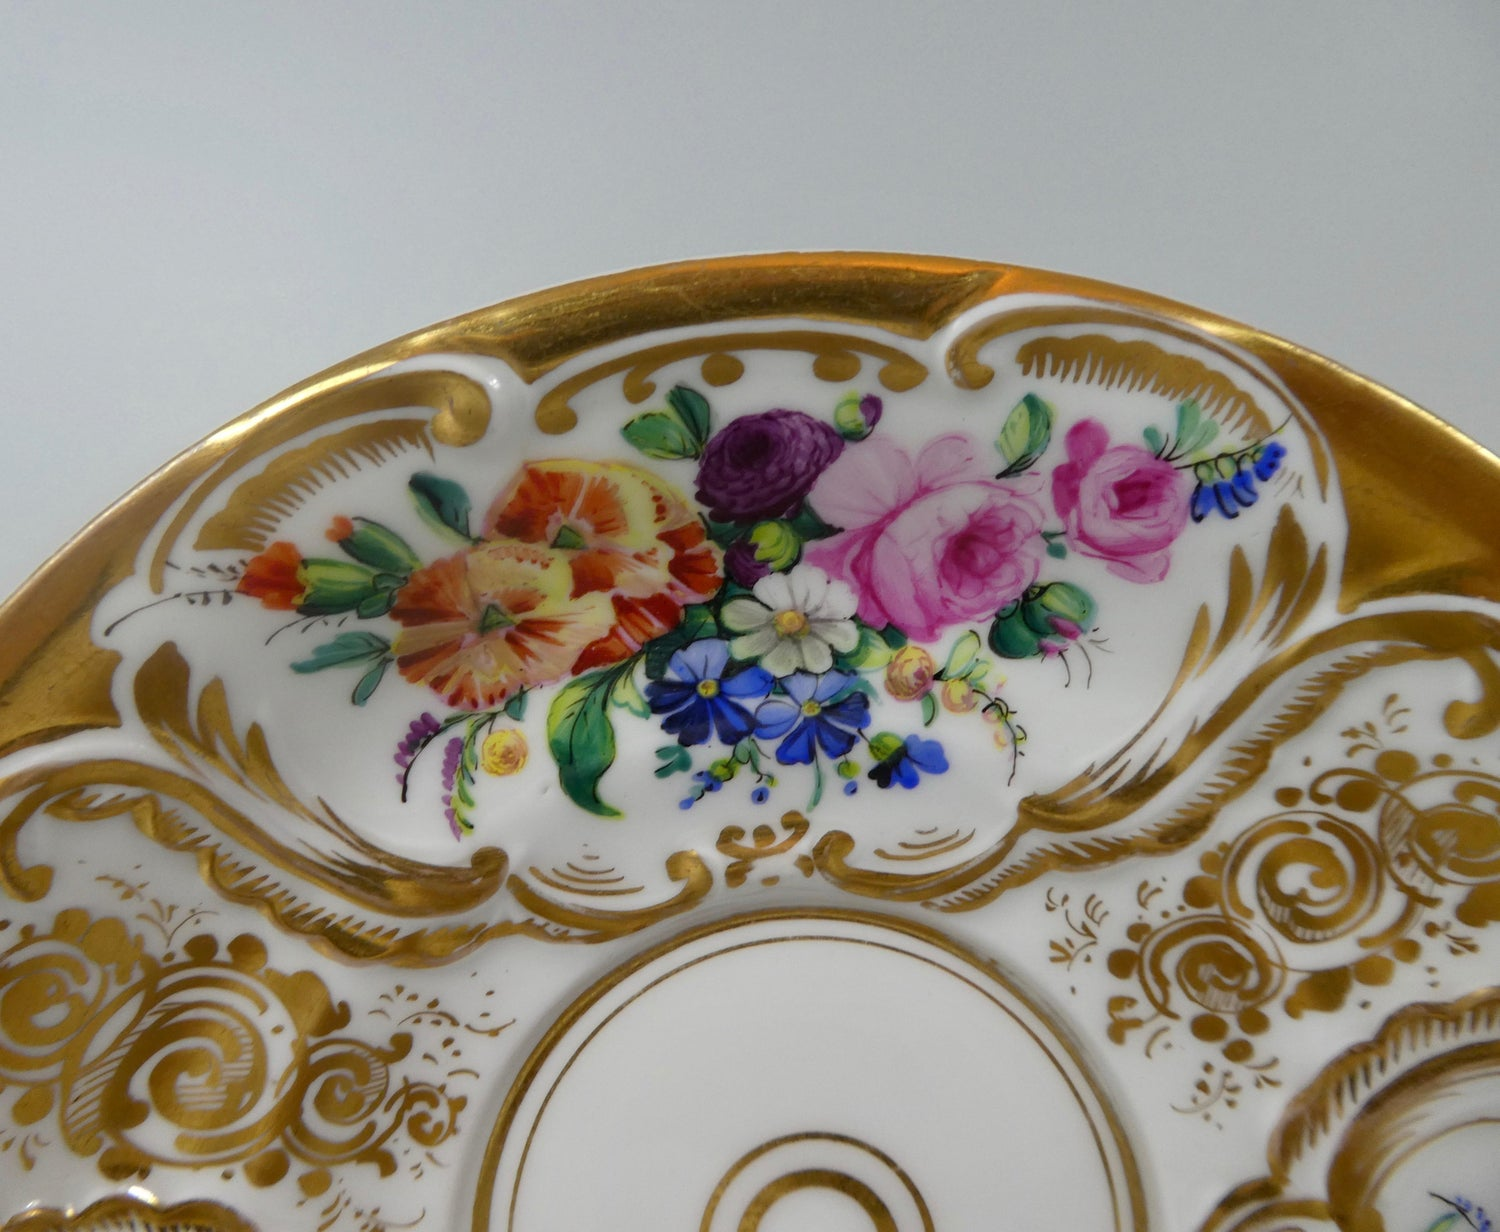 Antiques Decorative Arts Diplomatic Vintage Hand-painted Porcelain Blue Floral Plate 13cm